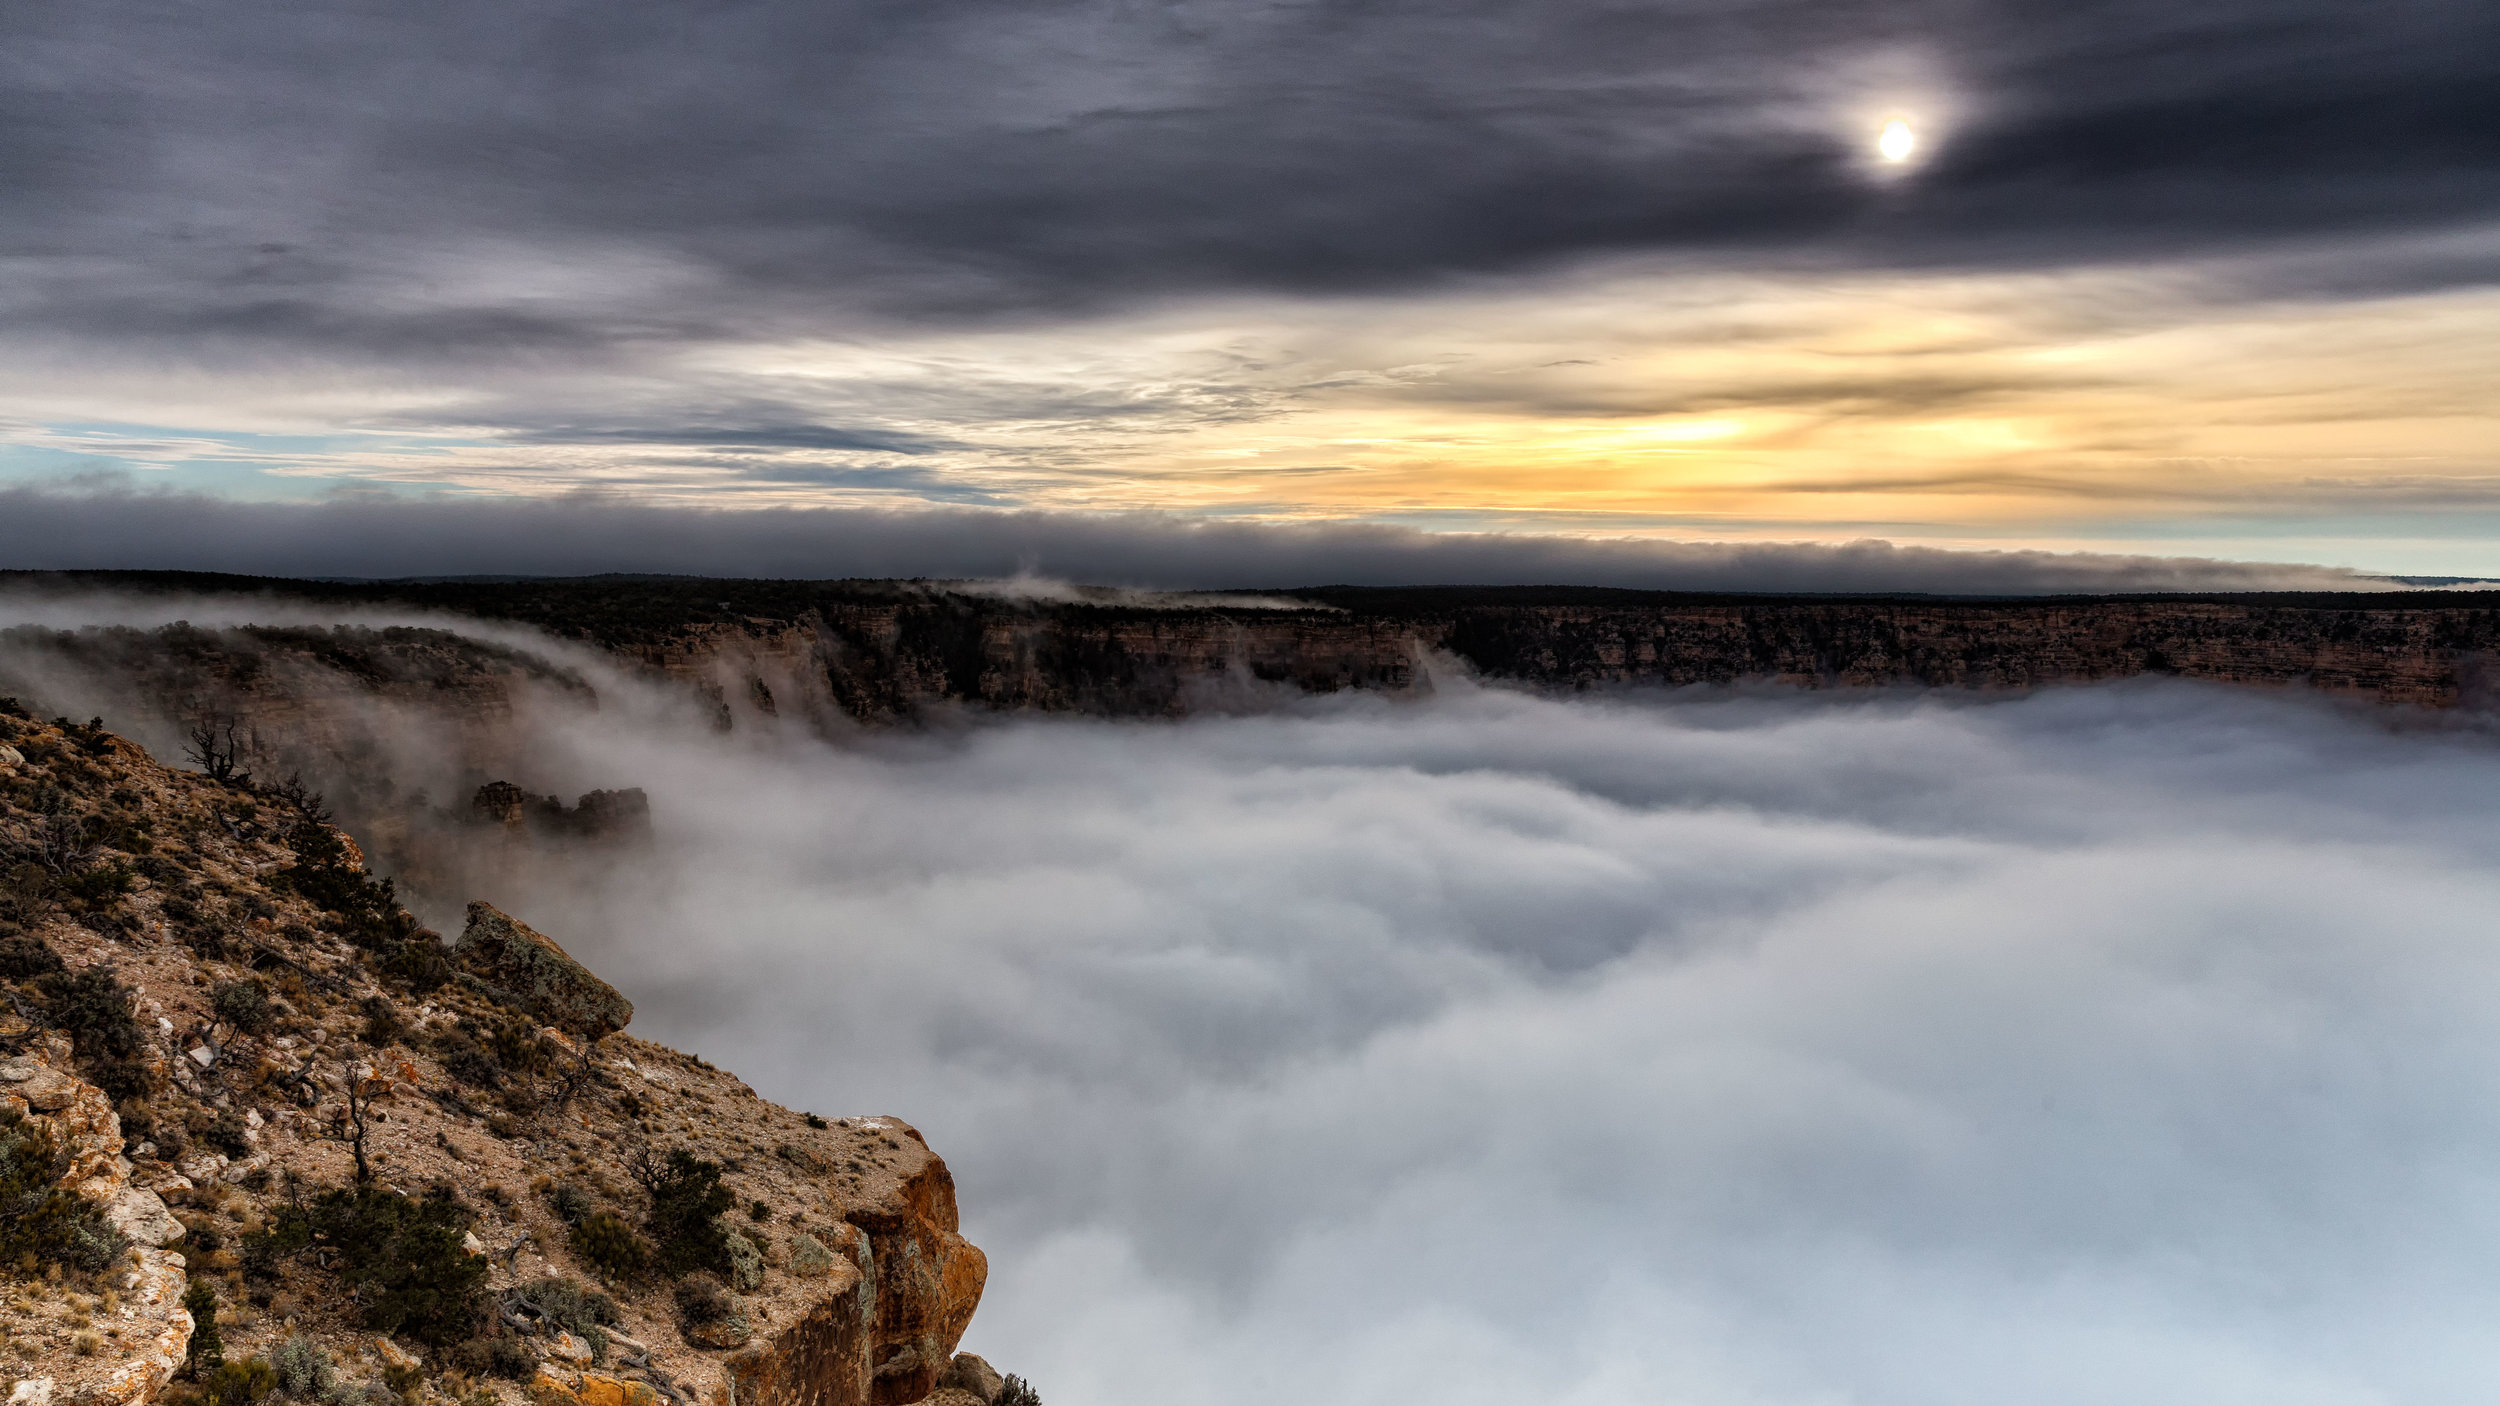 There was a Full Cloud Inversion at the Grand Canyon and this Guy Got an Unreal Timelapse of It